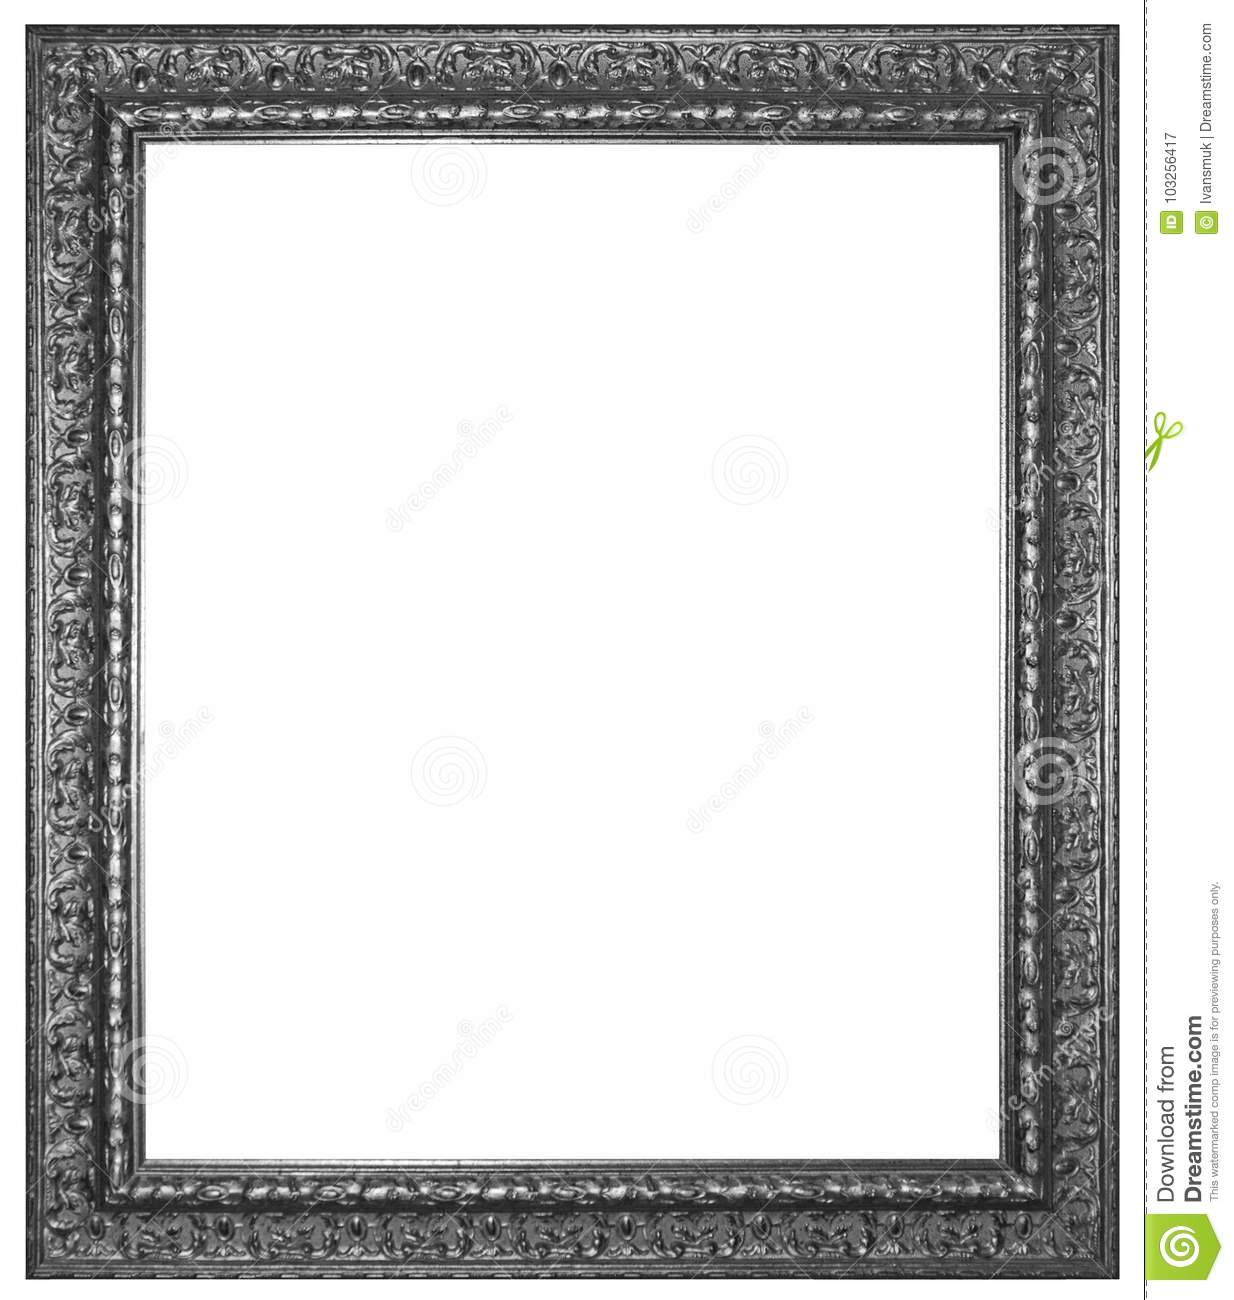 Silver Wooden Frame For Painting Or Picture Stock Image - Image of ...